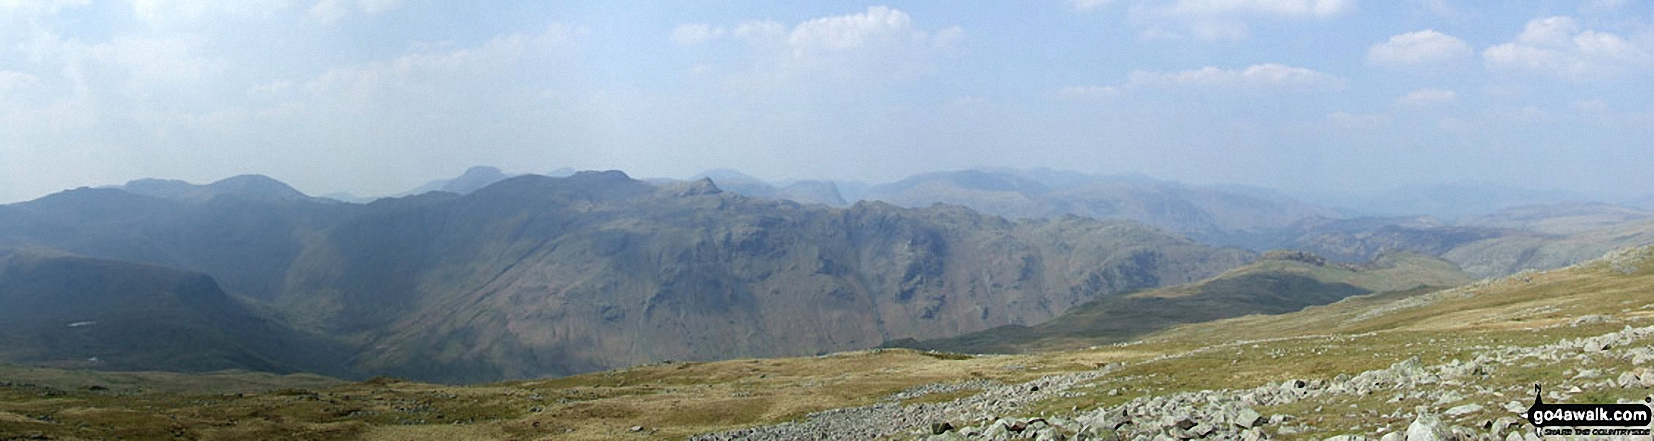 *Scafell Pike (far left back) and The Borrowdale Fells featuring Allen Crags, High House Tarn Top, Red Beck Top, Looking Stead, Glaramara, Comb Head, Comb Door Top, Dovenest Top and Rosthwaite Fell (Bessyboot) from High Raise (Langdale)